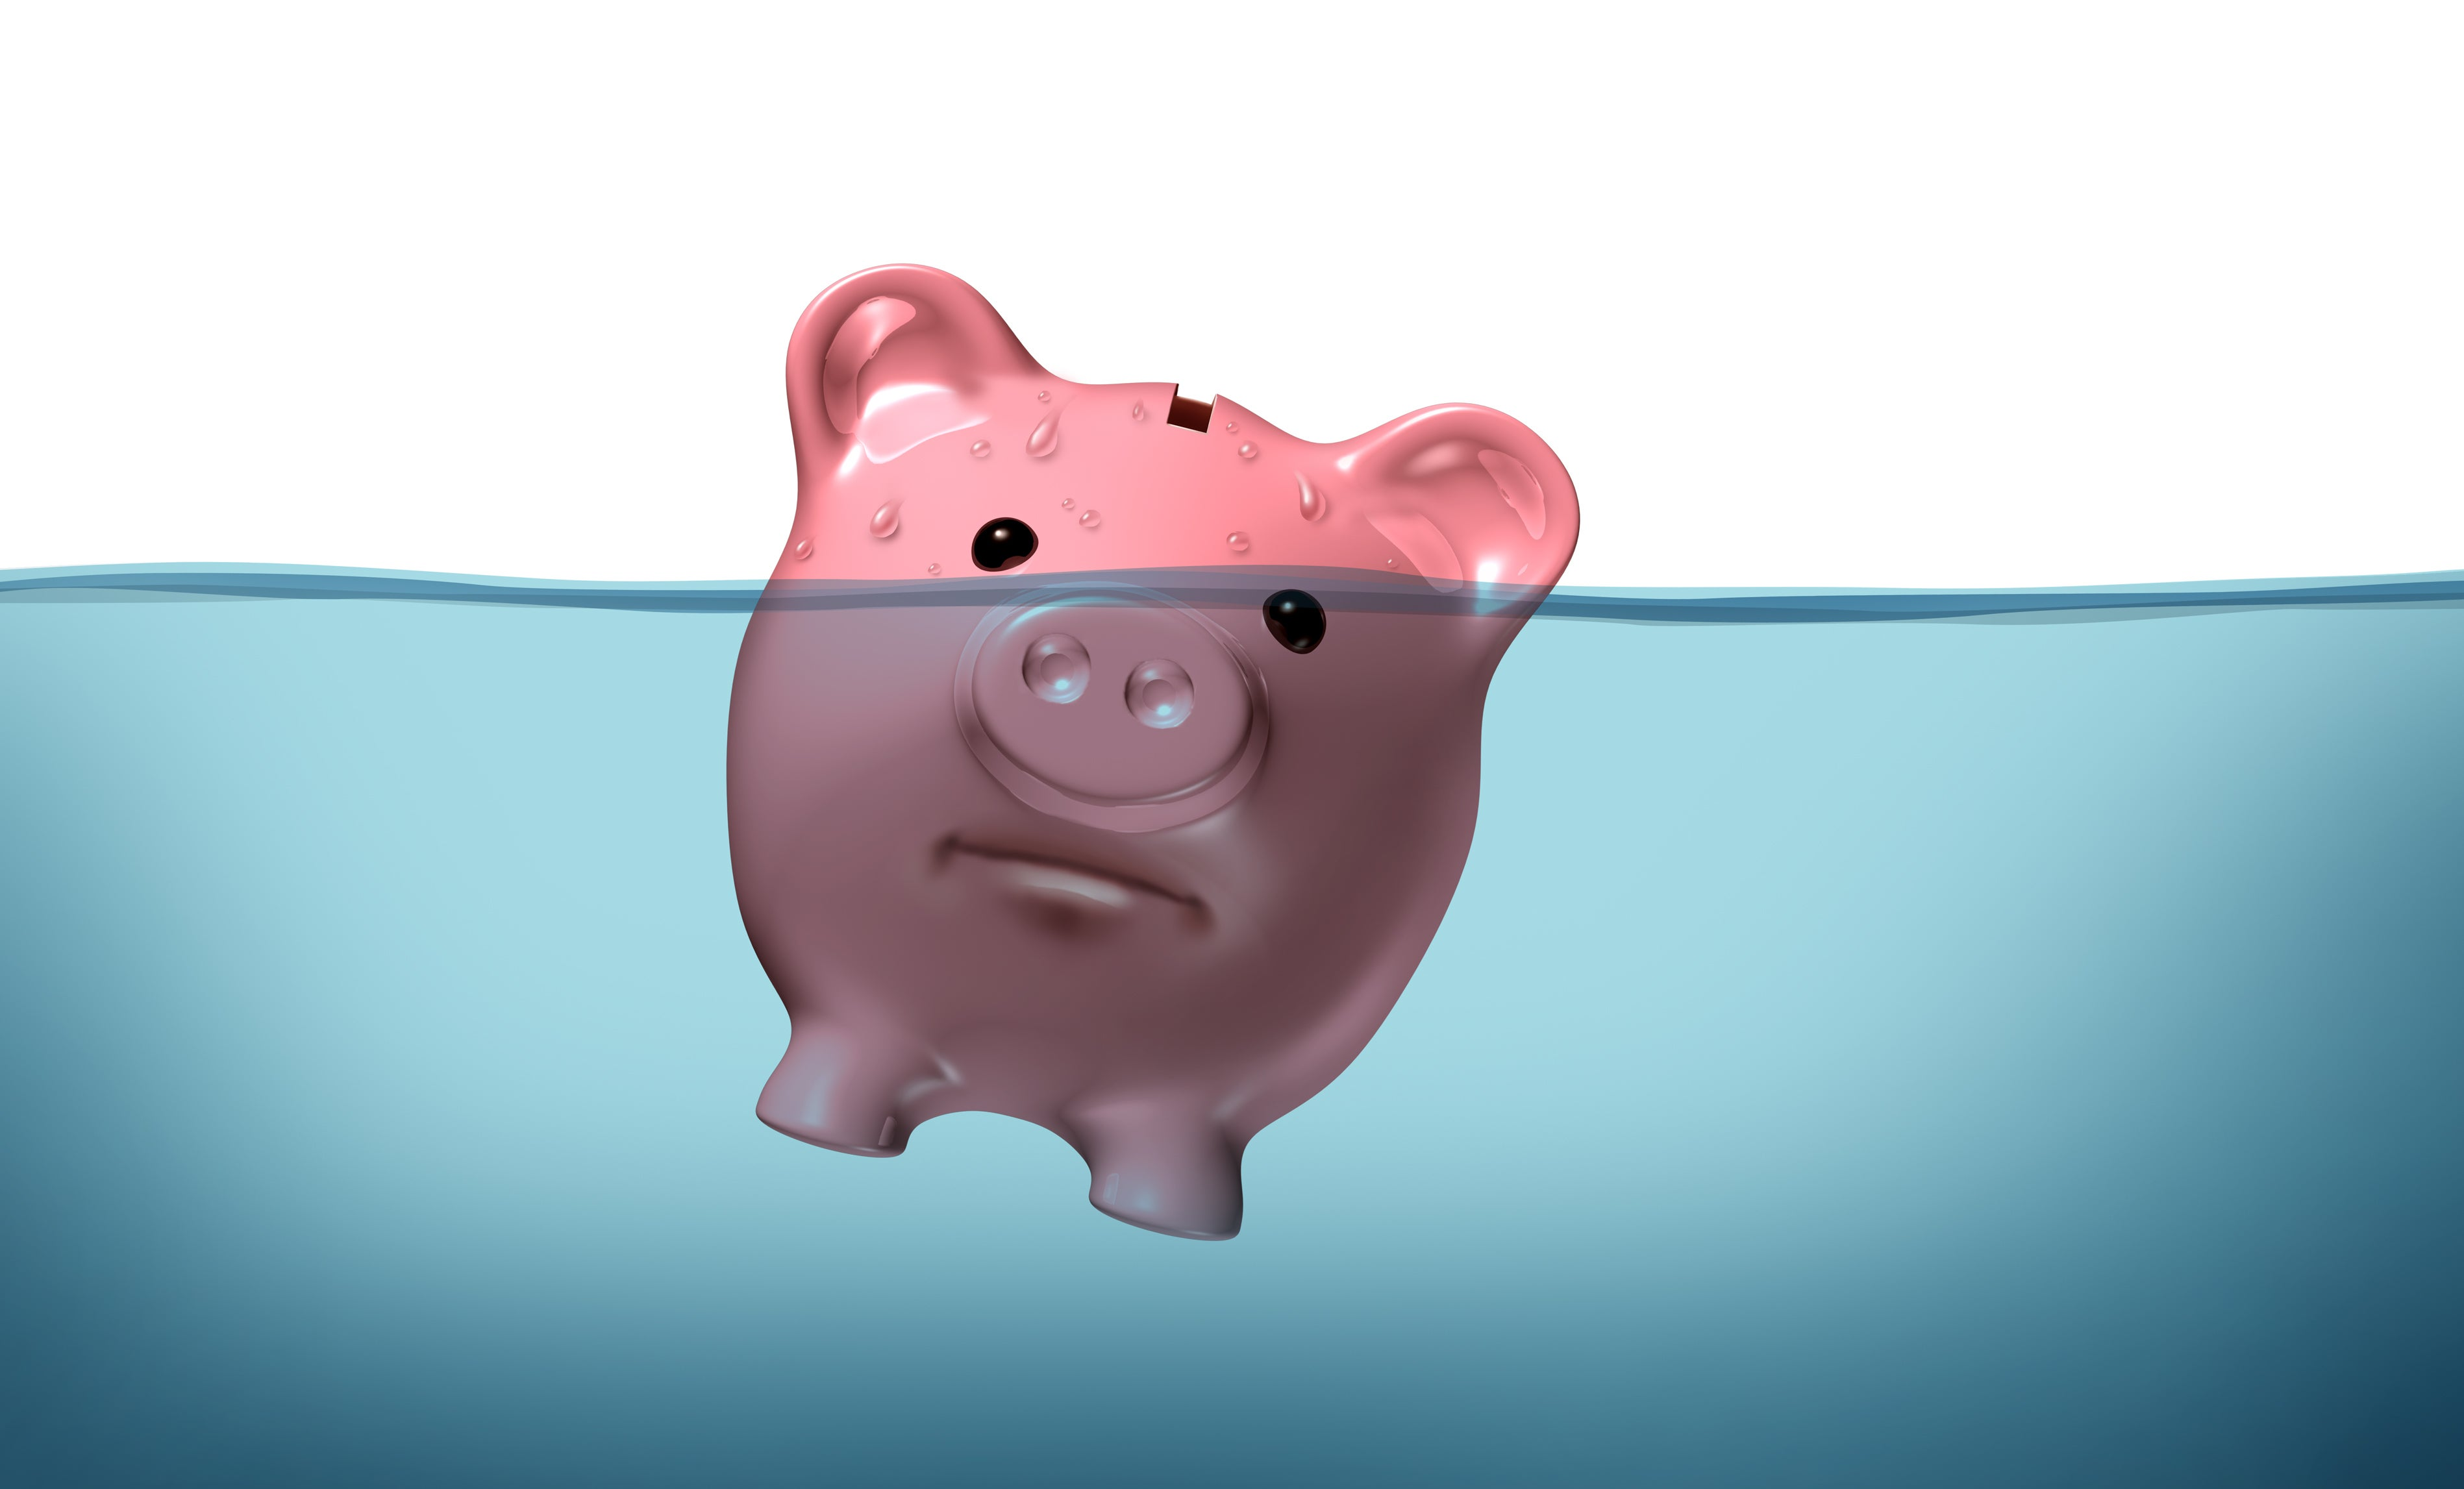 A piggy bank is shown, half submerged in water and with an unhappy expression.